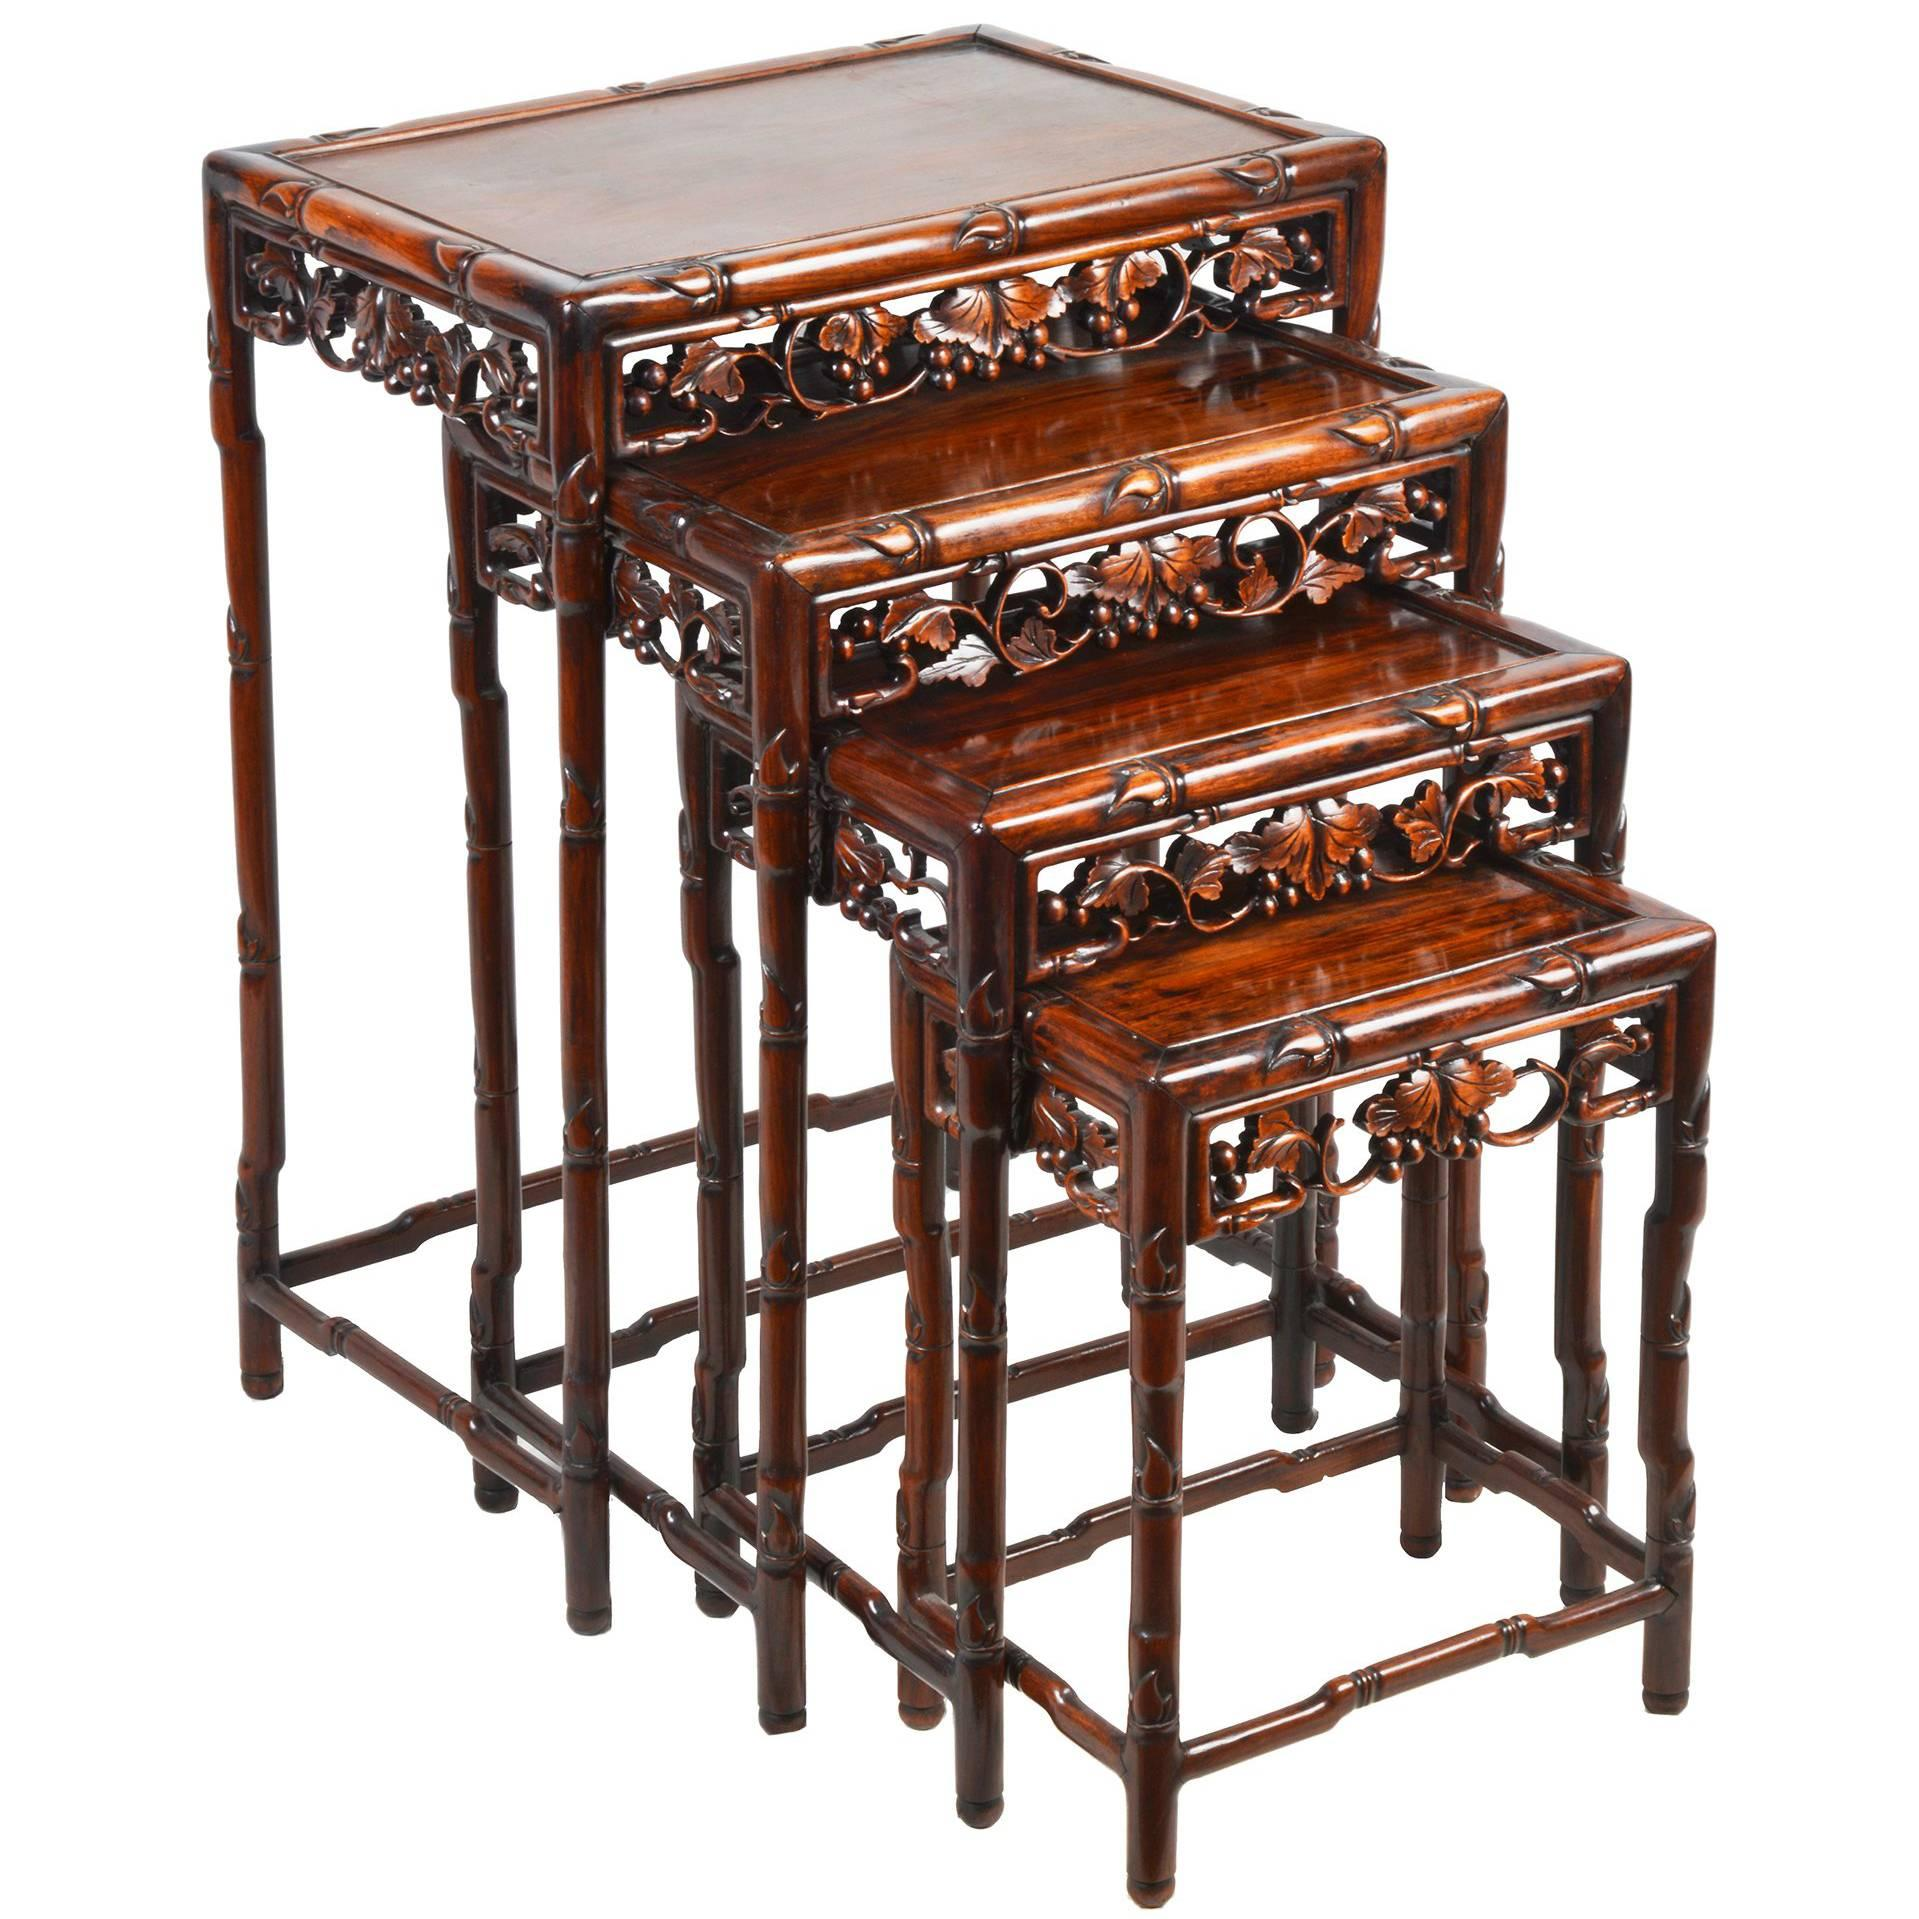 Genial Nest Of Four Chinese Hardwood Tables, 19th Century For Sale